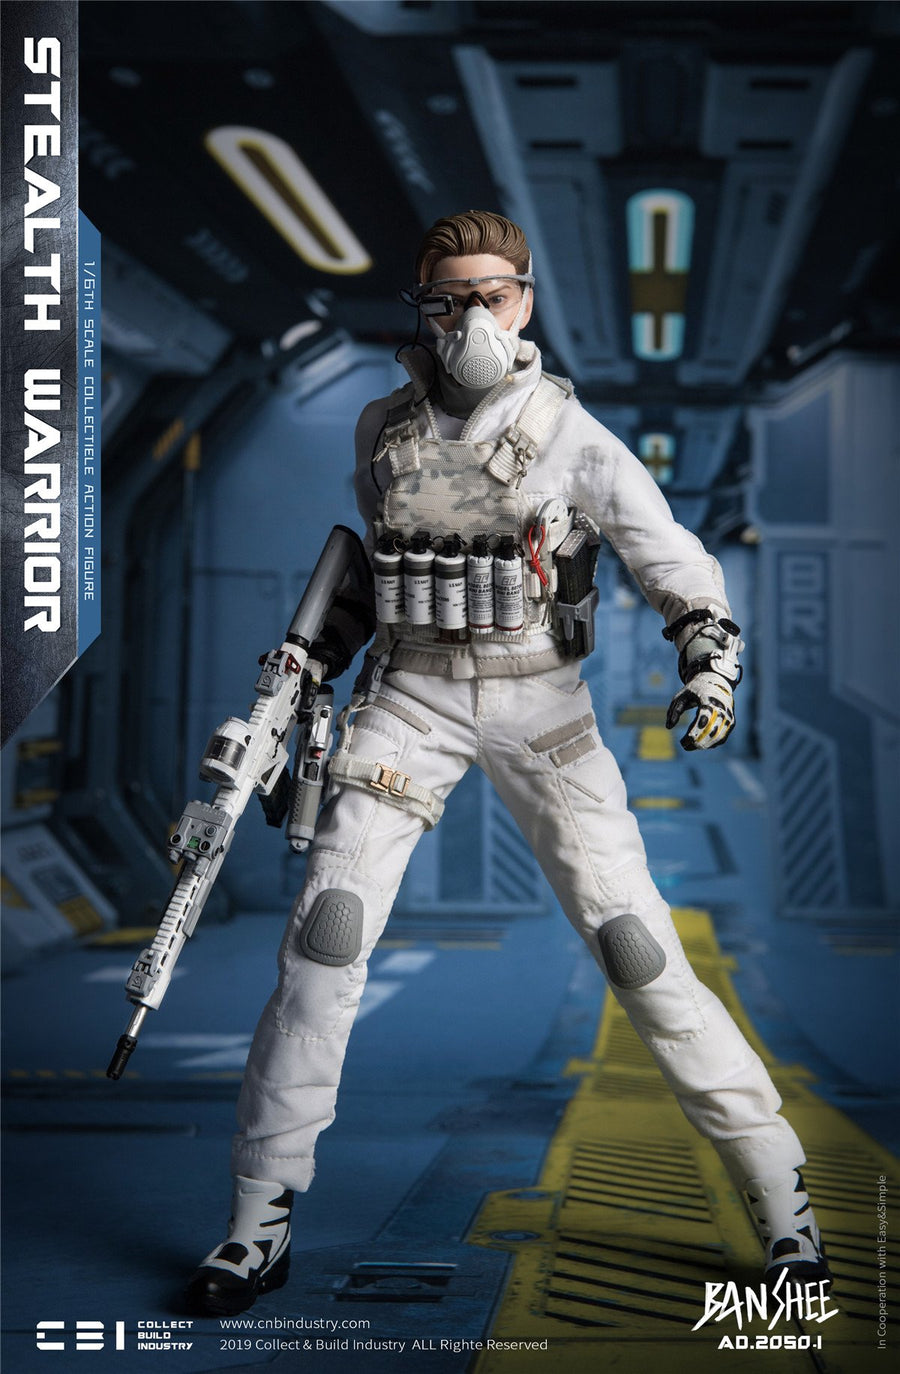 White Belt w//Mag Holsters 1//6 Scale Toy Banshee Stealth Warrior Light Version